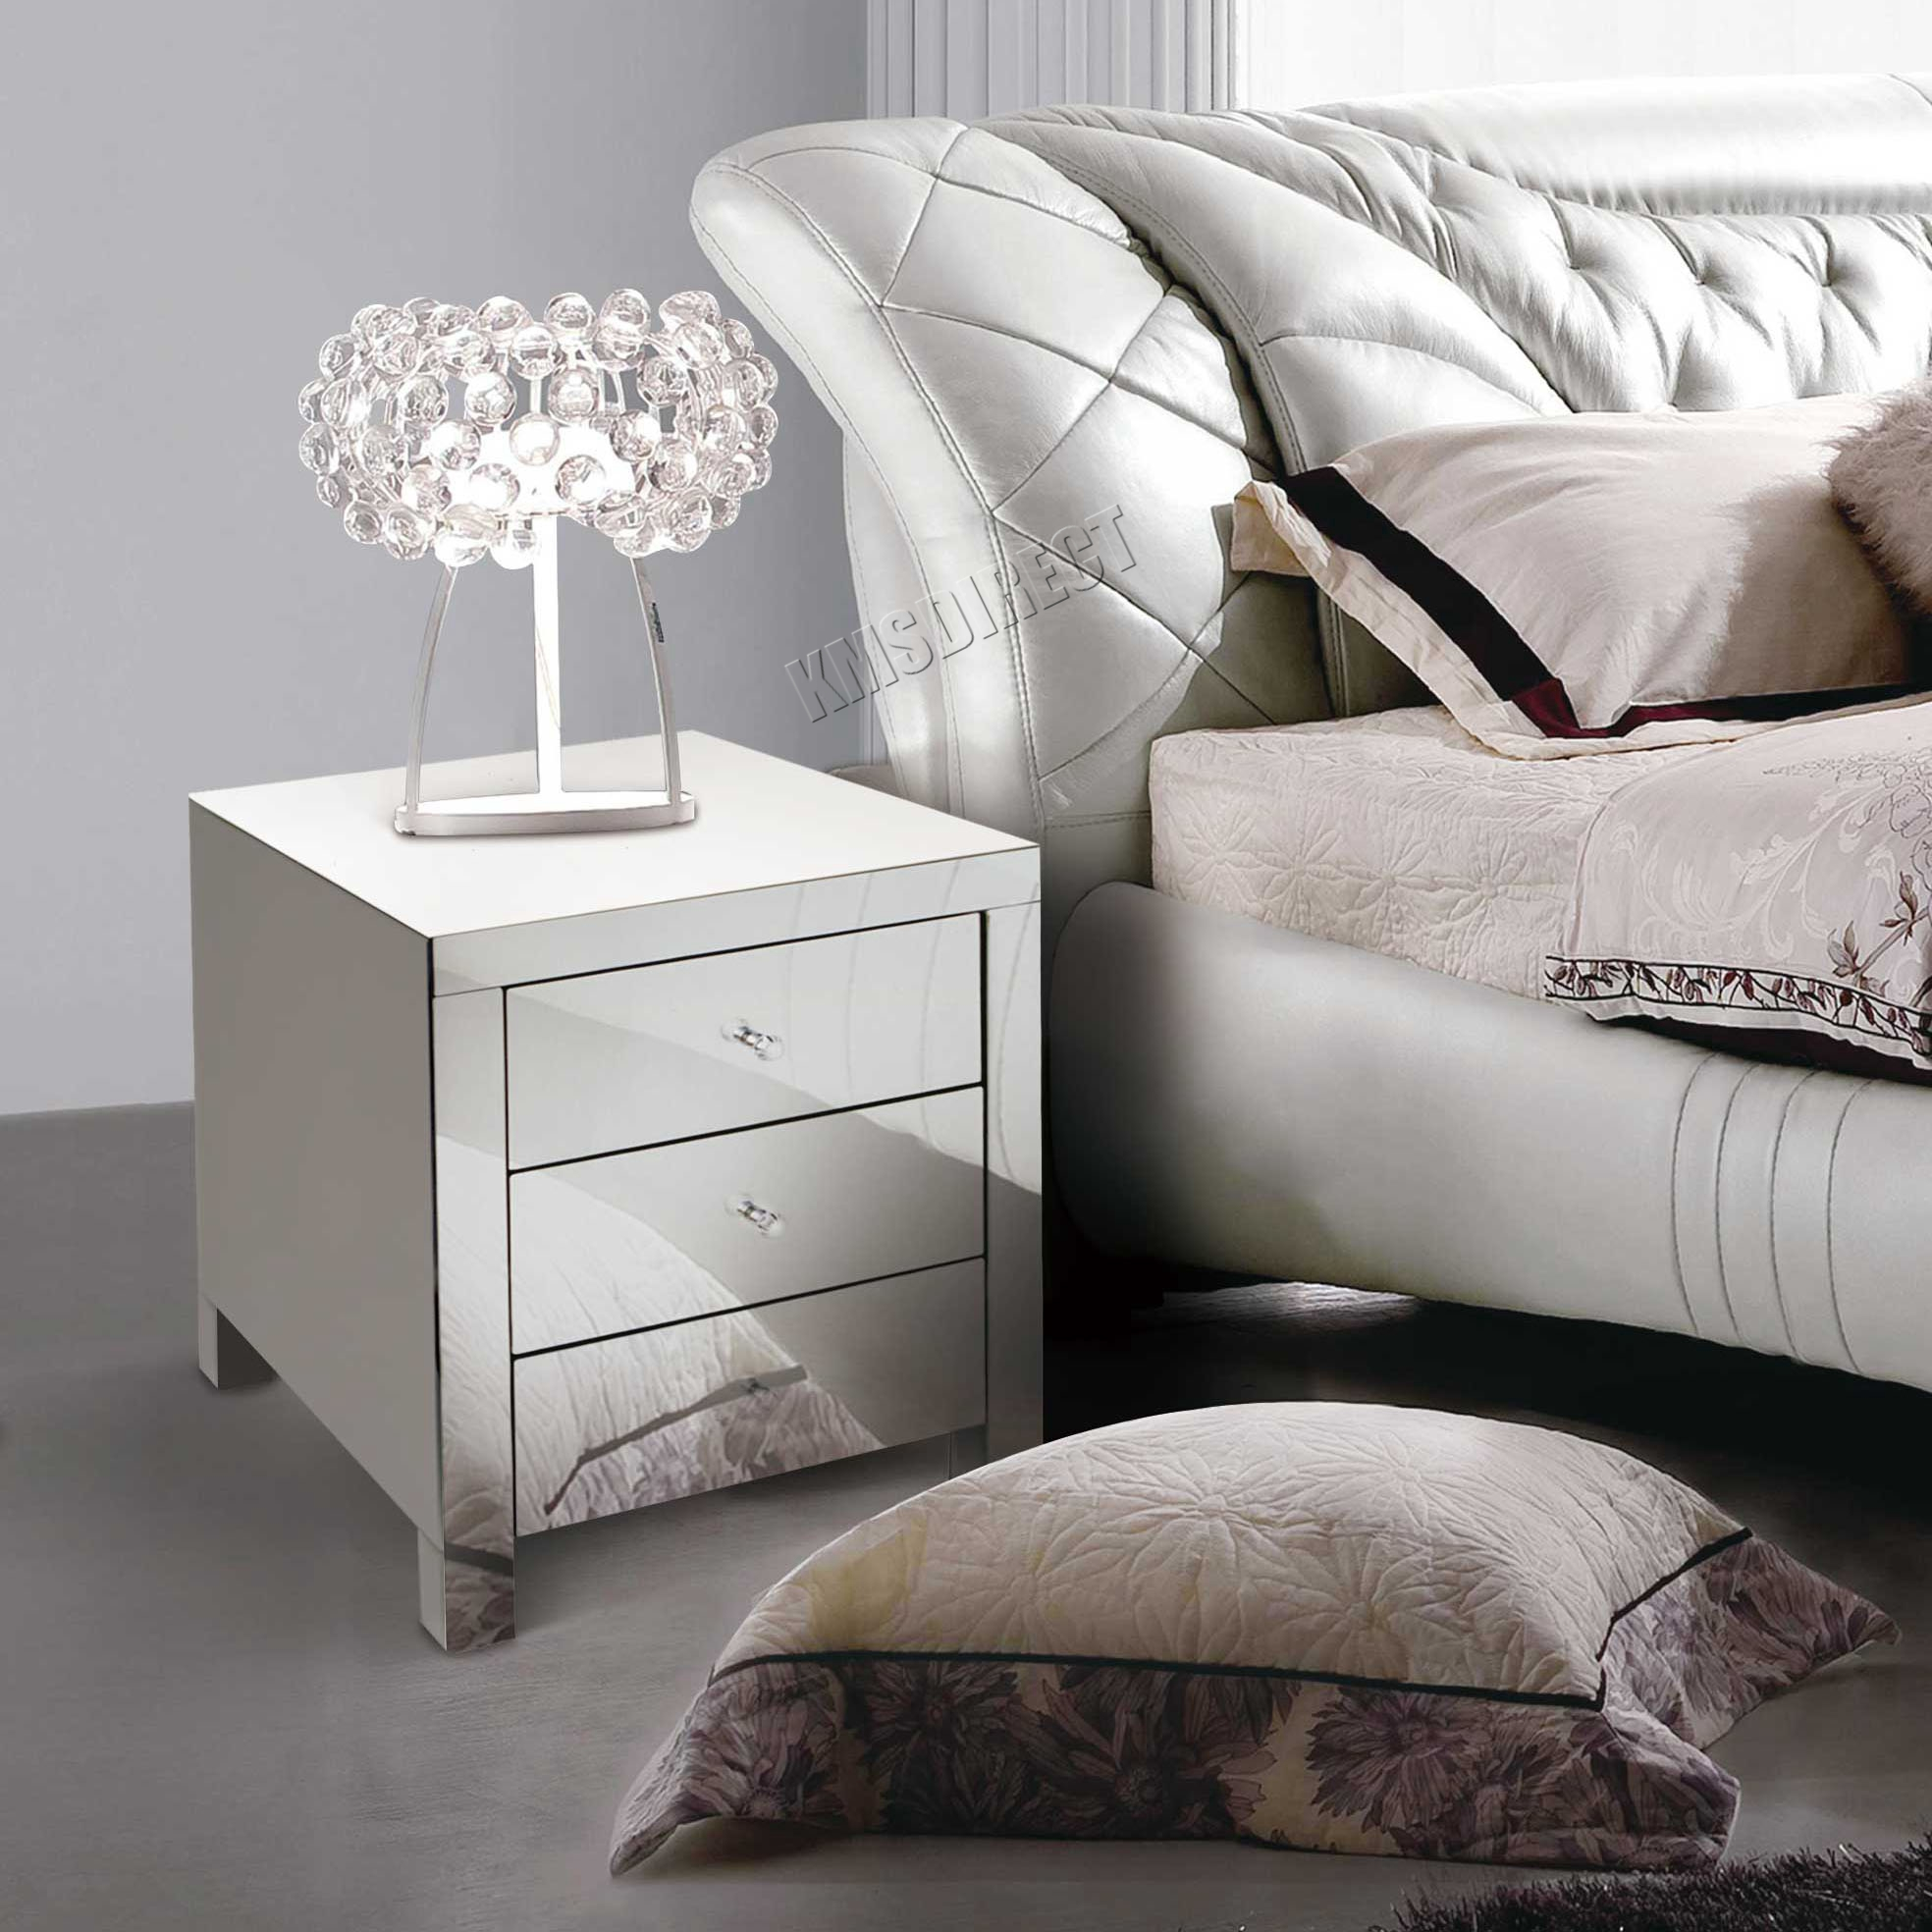 Mirrored Furniture Glass 3 Drawer Bedside Cabinet Table Bedroom MBC08